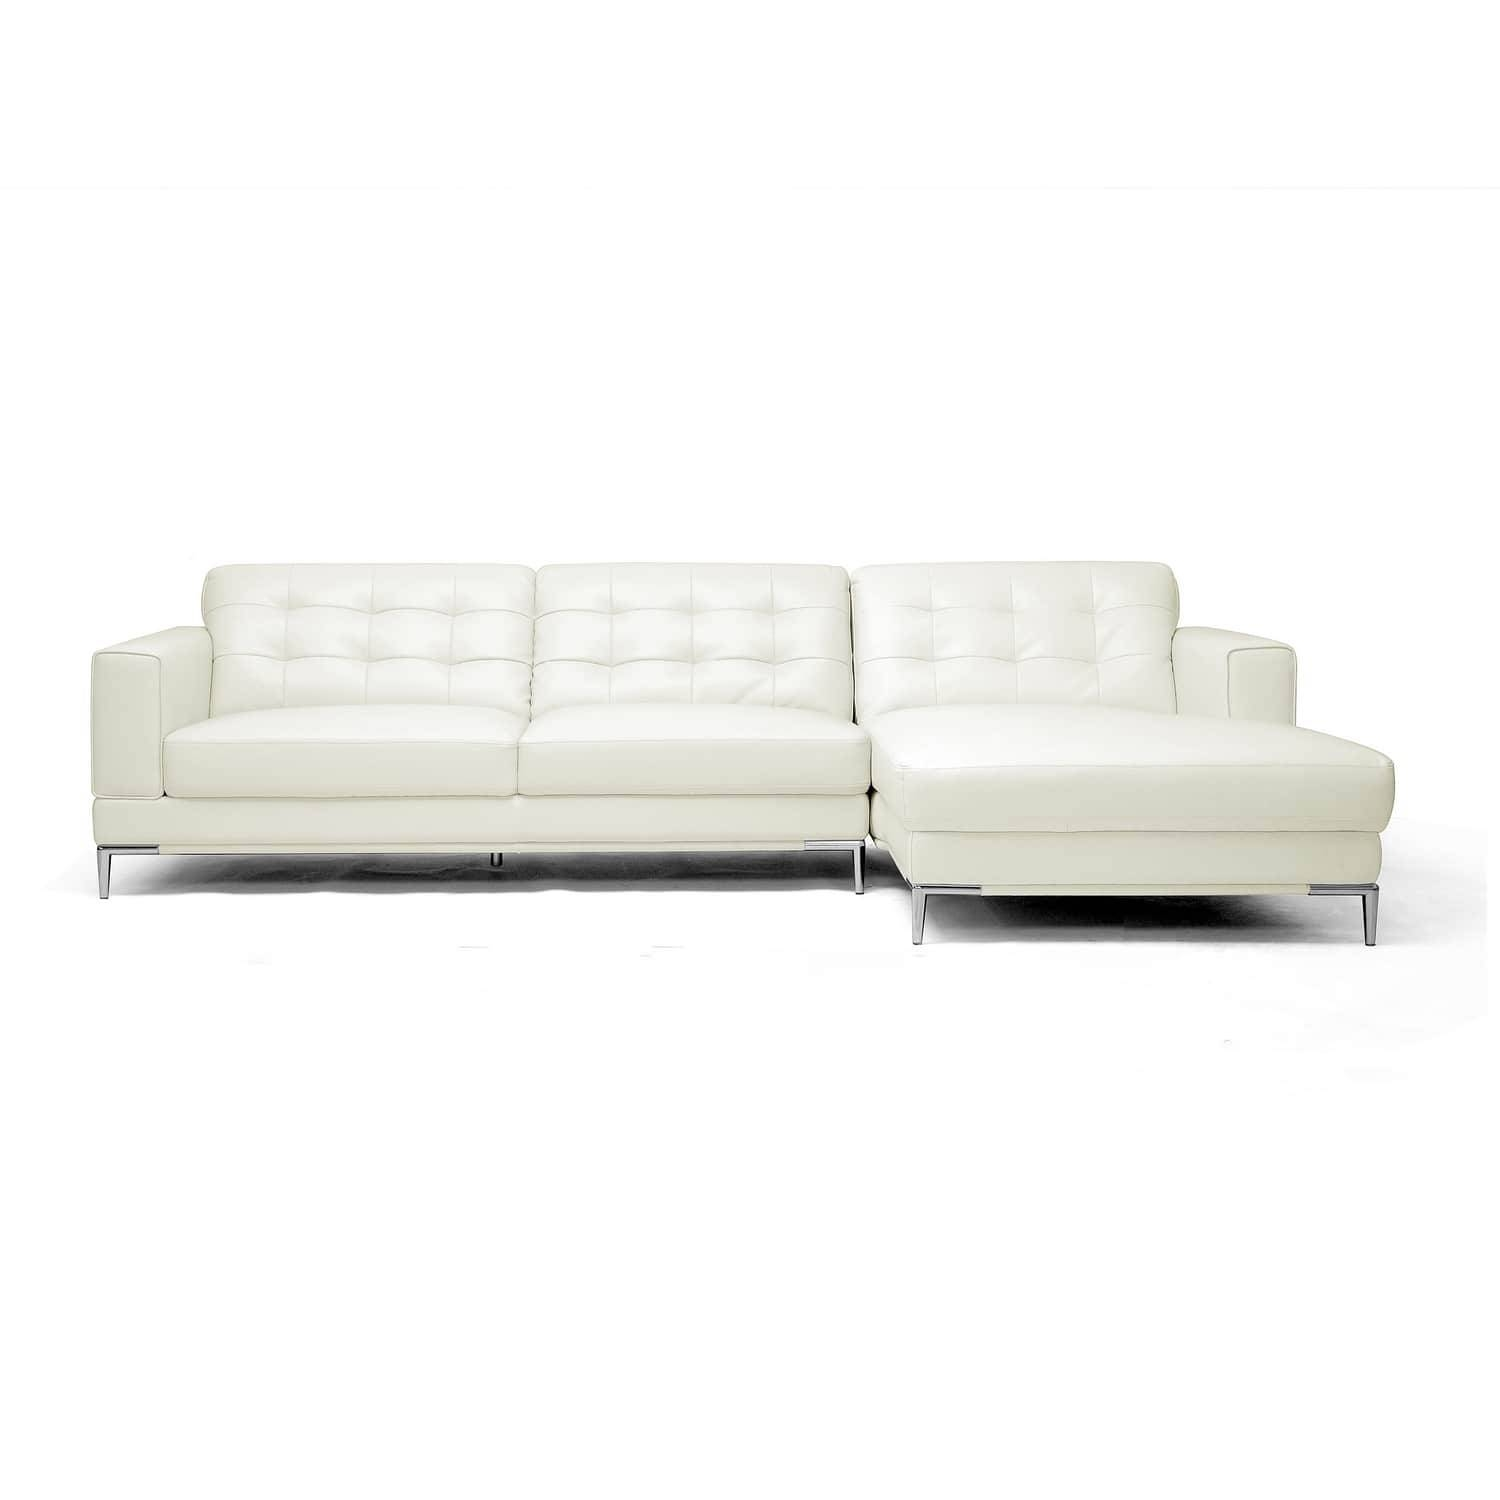 Babbitt Sleek Ivory Leather Modern Sectional Sofa - Free Shipping regarding Sleek Sectional Sofa (Image 3 of 25)